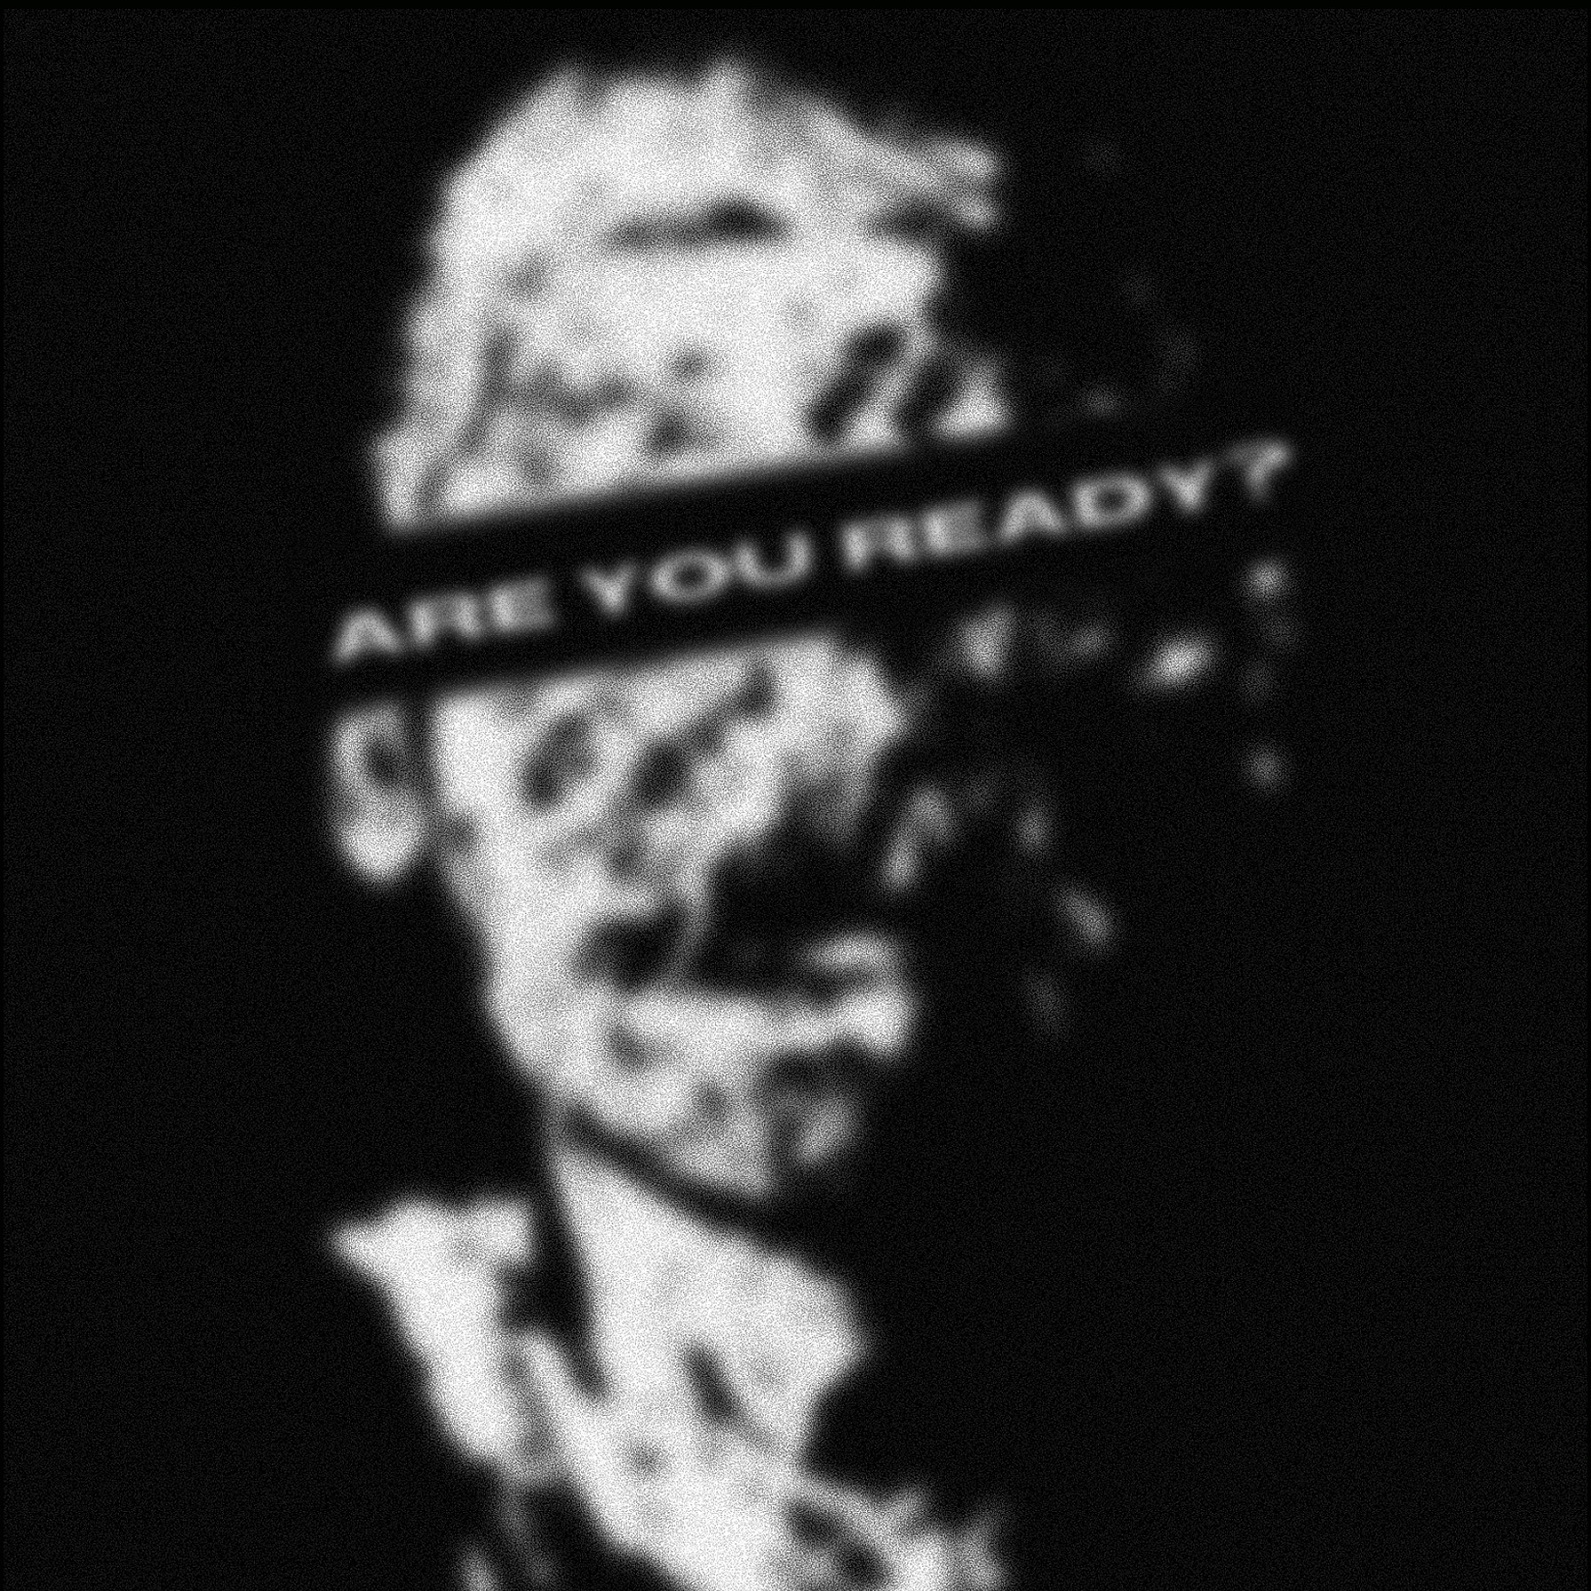 BiS - Are you ready? detail single cd dvd tracklist watch official MV YouTube lyrics